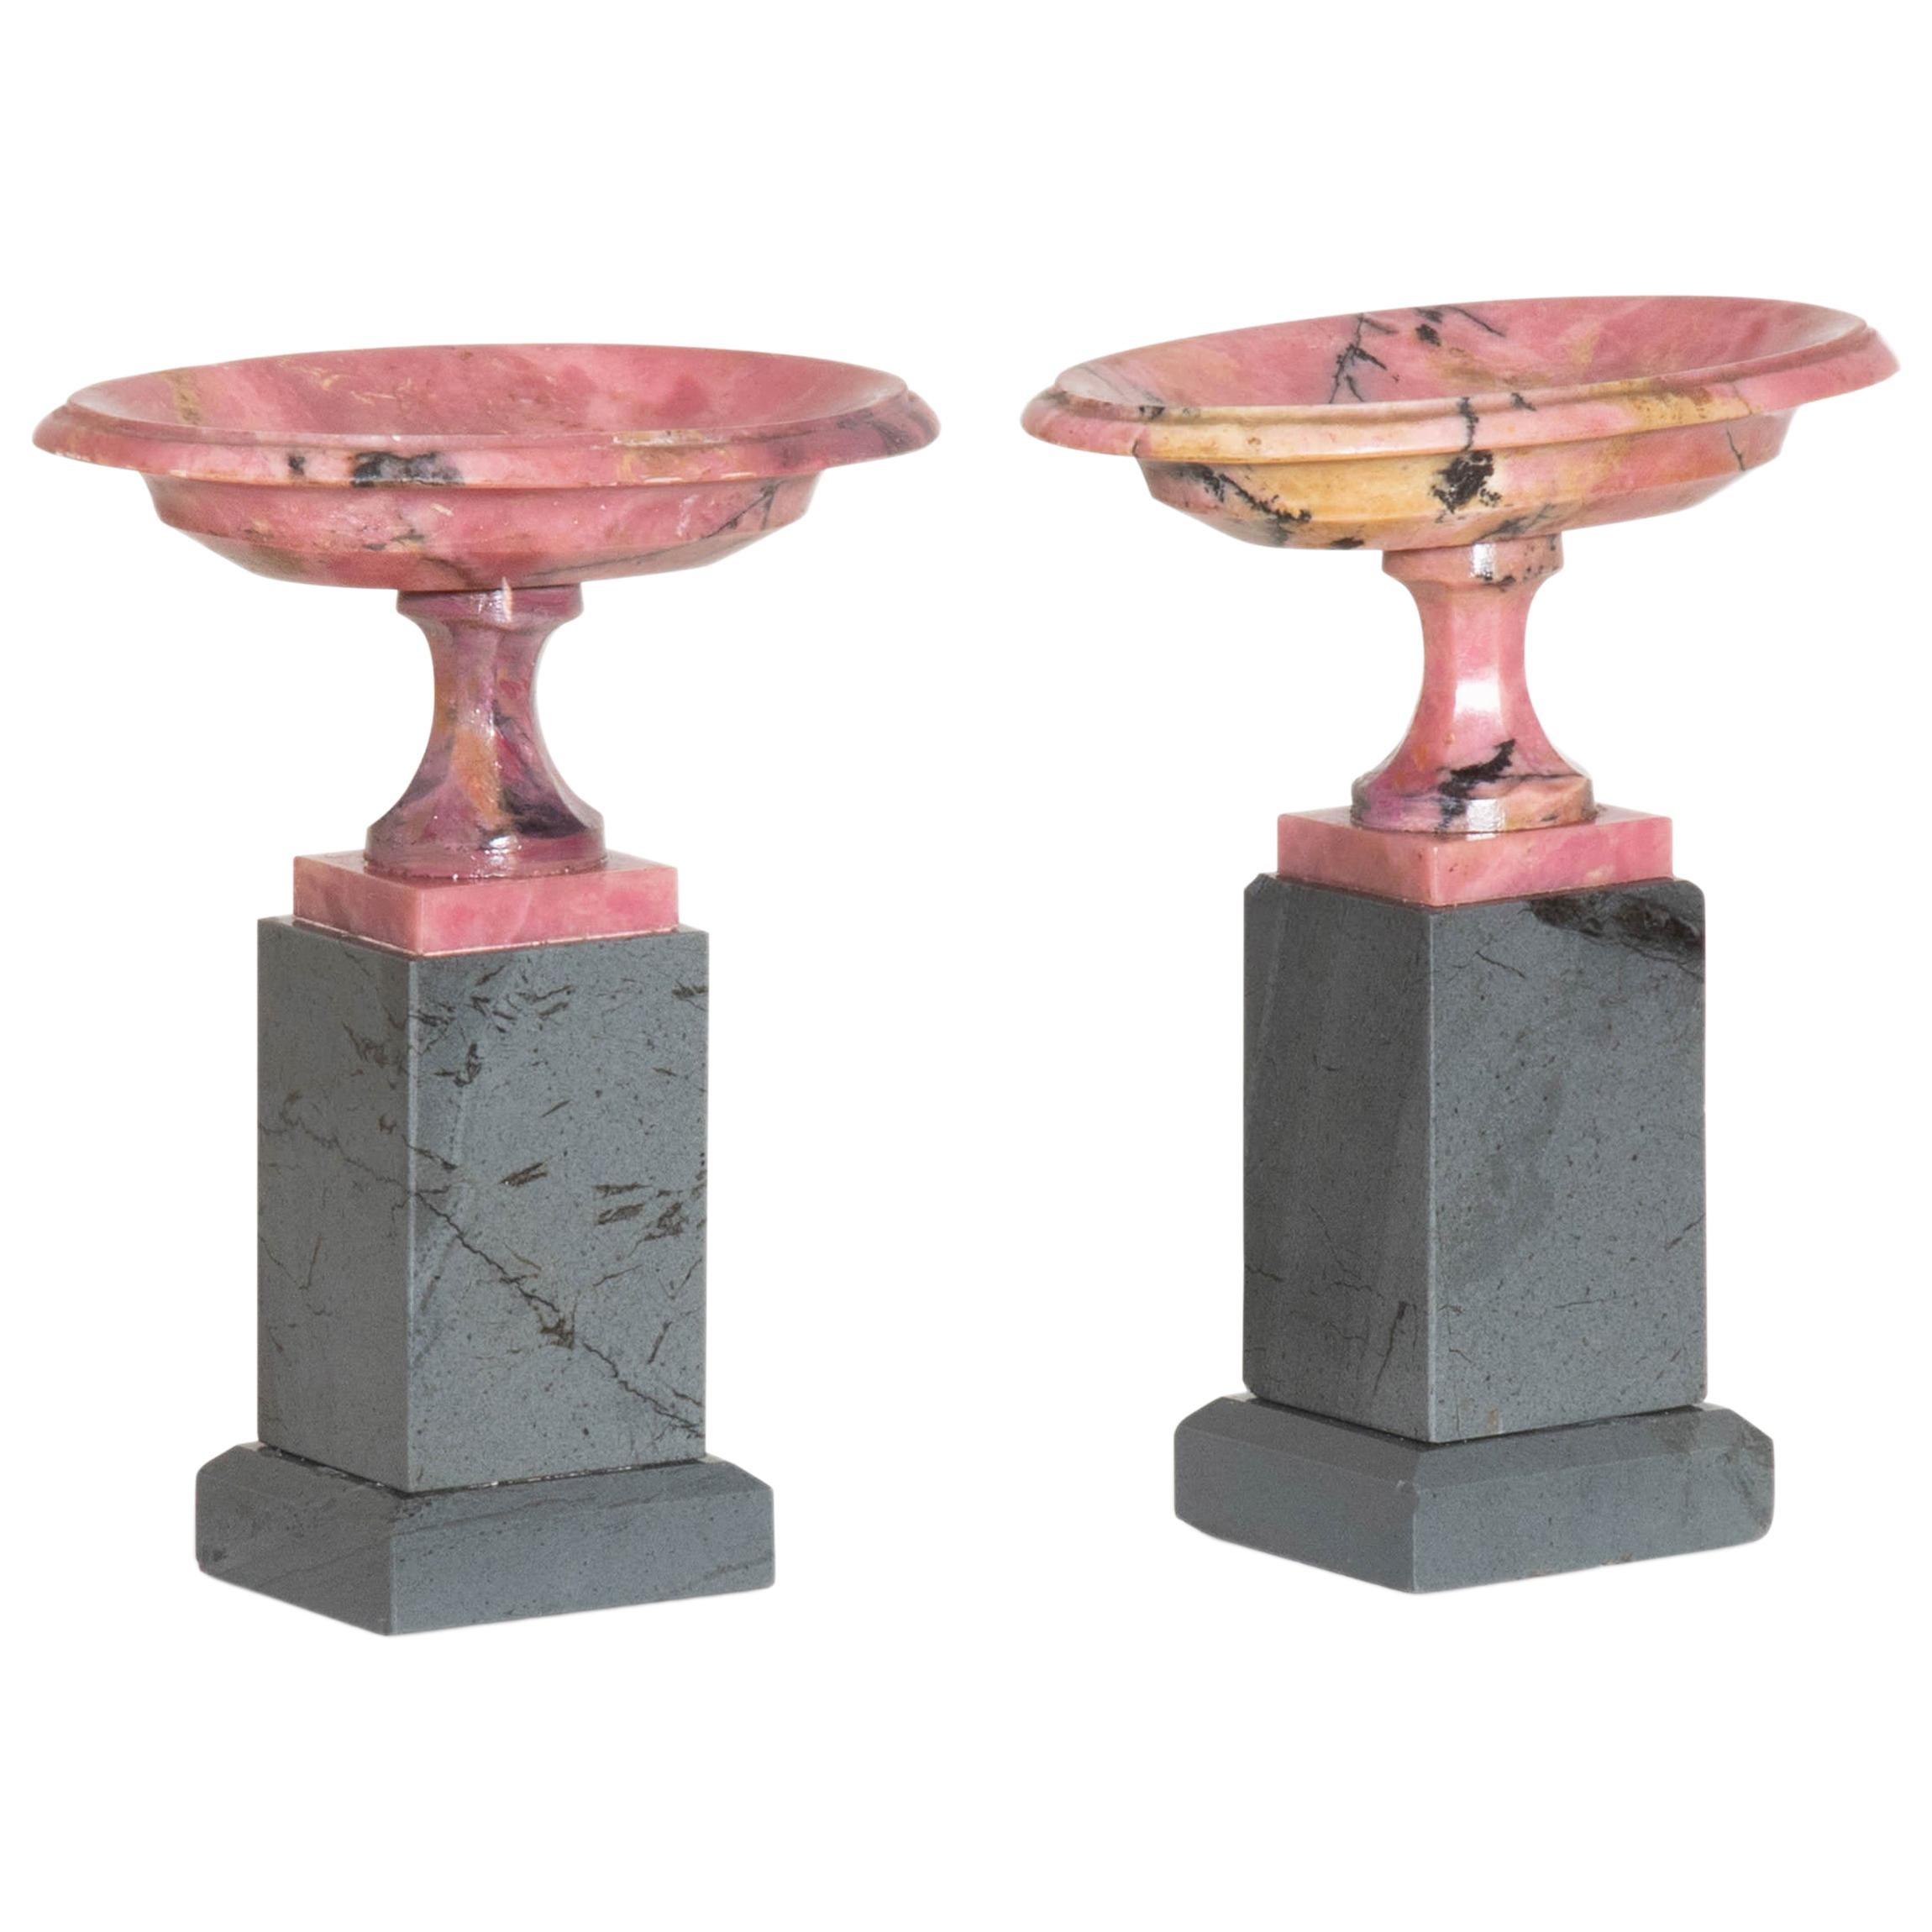 Pair of Small Rhodonite Tazzas, Russia, First Half of the 19th Century